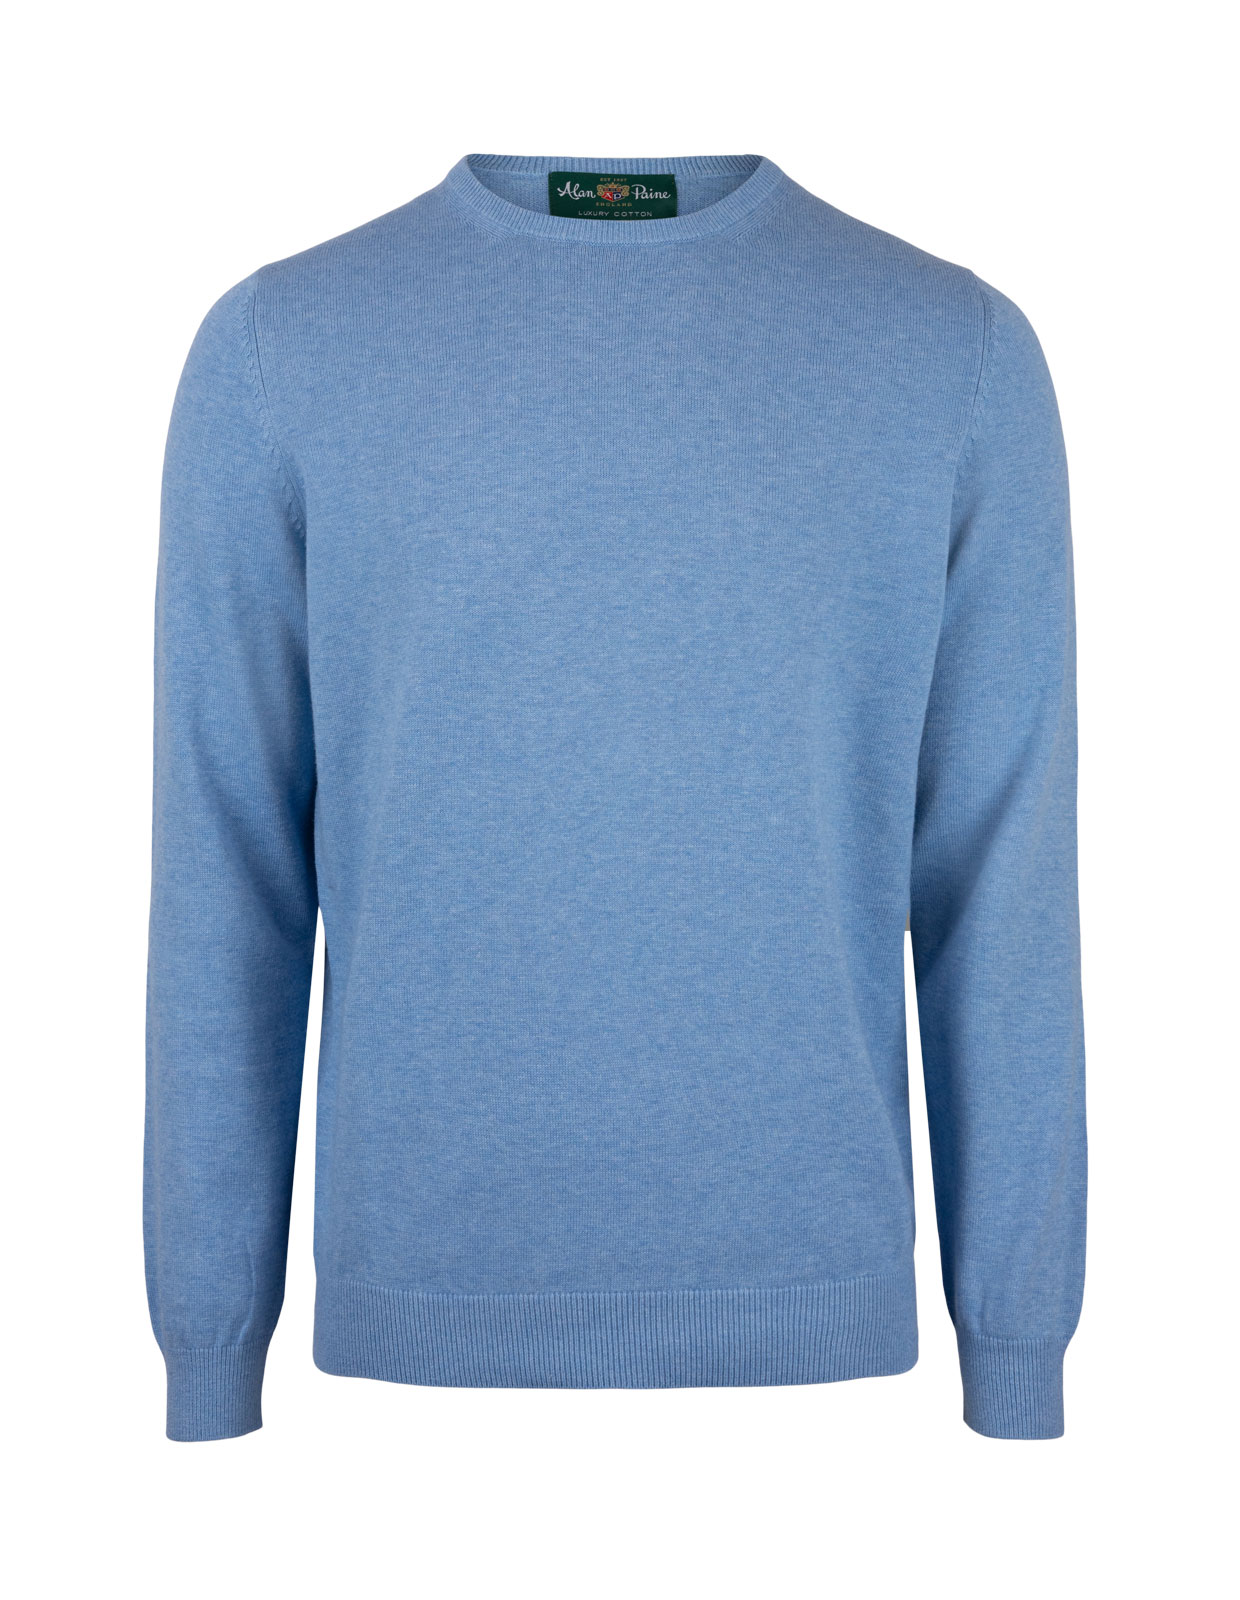 Leysmill Cotton Cashmere Crew Neck Jumper Carolina Blue